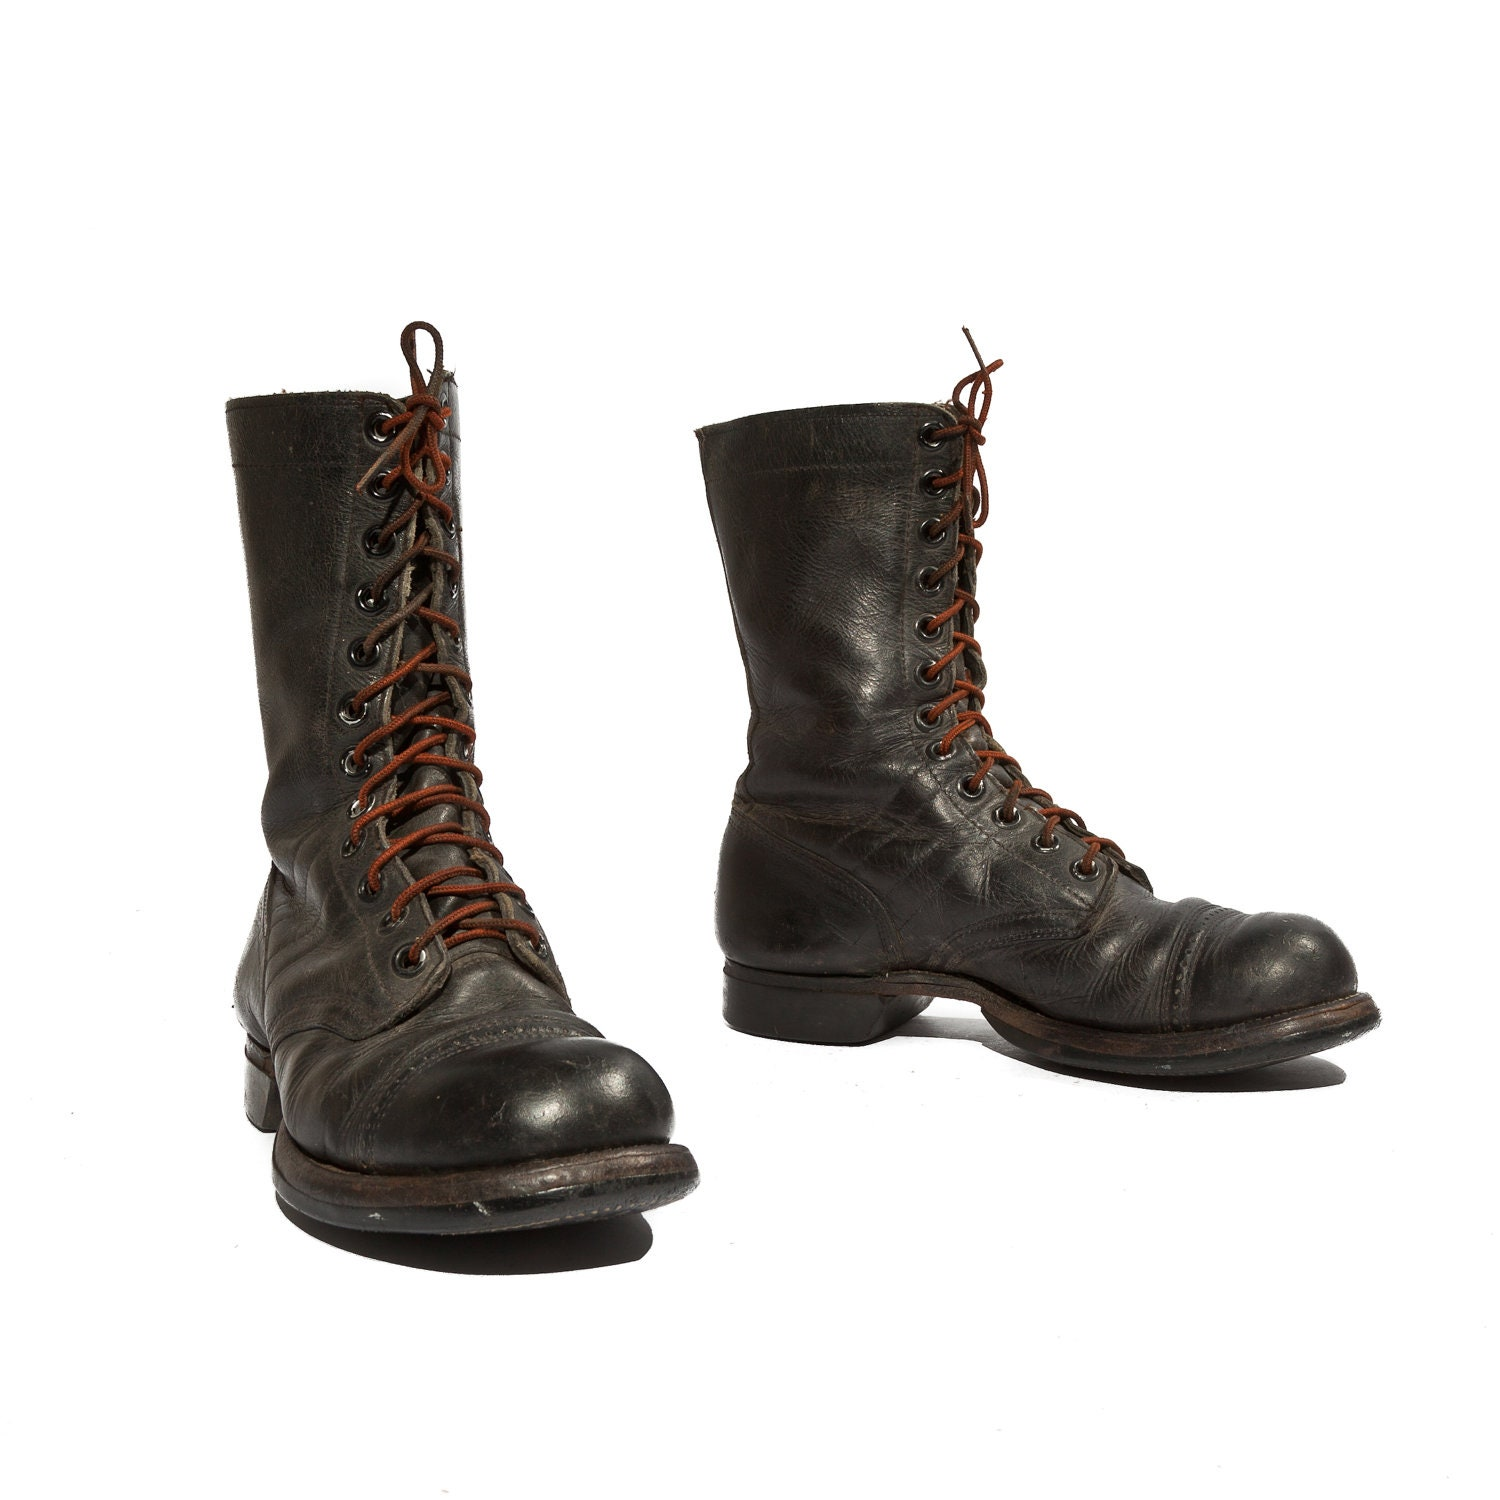 1950's Paratrooper Jump Boots by the Herman Shoes & Boots